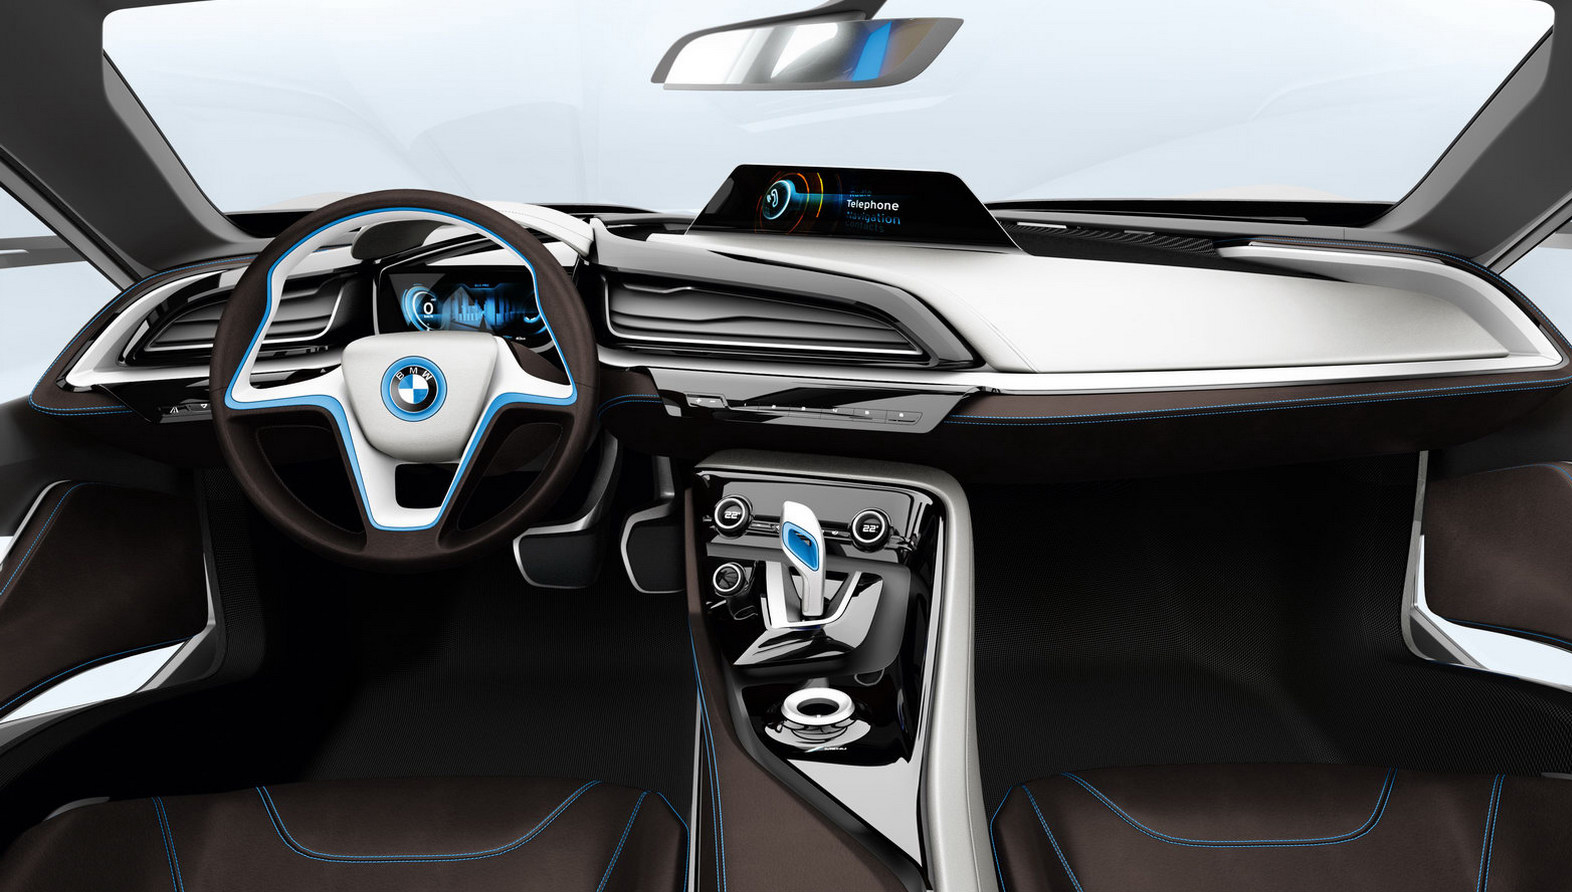 2013 BMW I8 CONCEPT CAR 7 BMW ANNOUNCES IT UPCOMING I8 CONCEPT CAR TO BE UNVEILED IN 2013